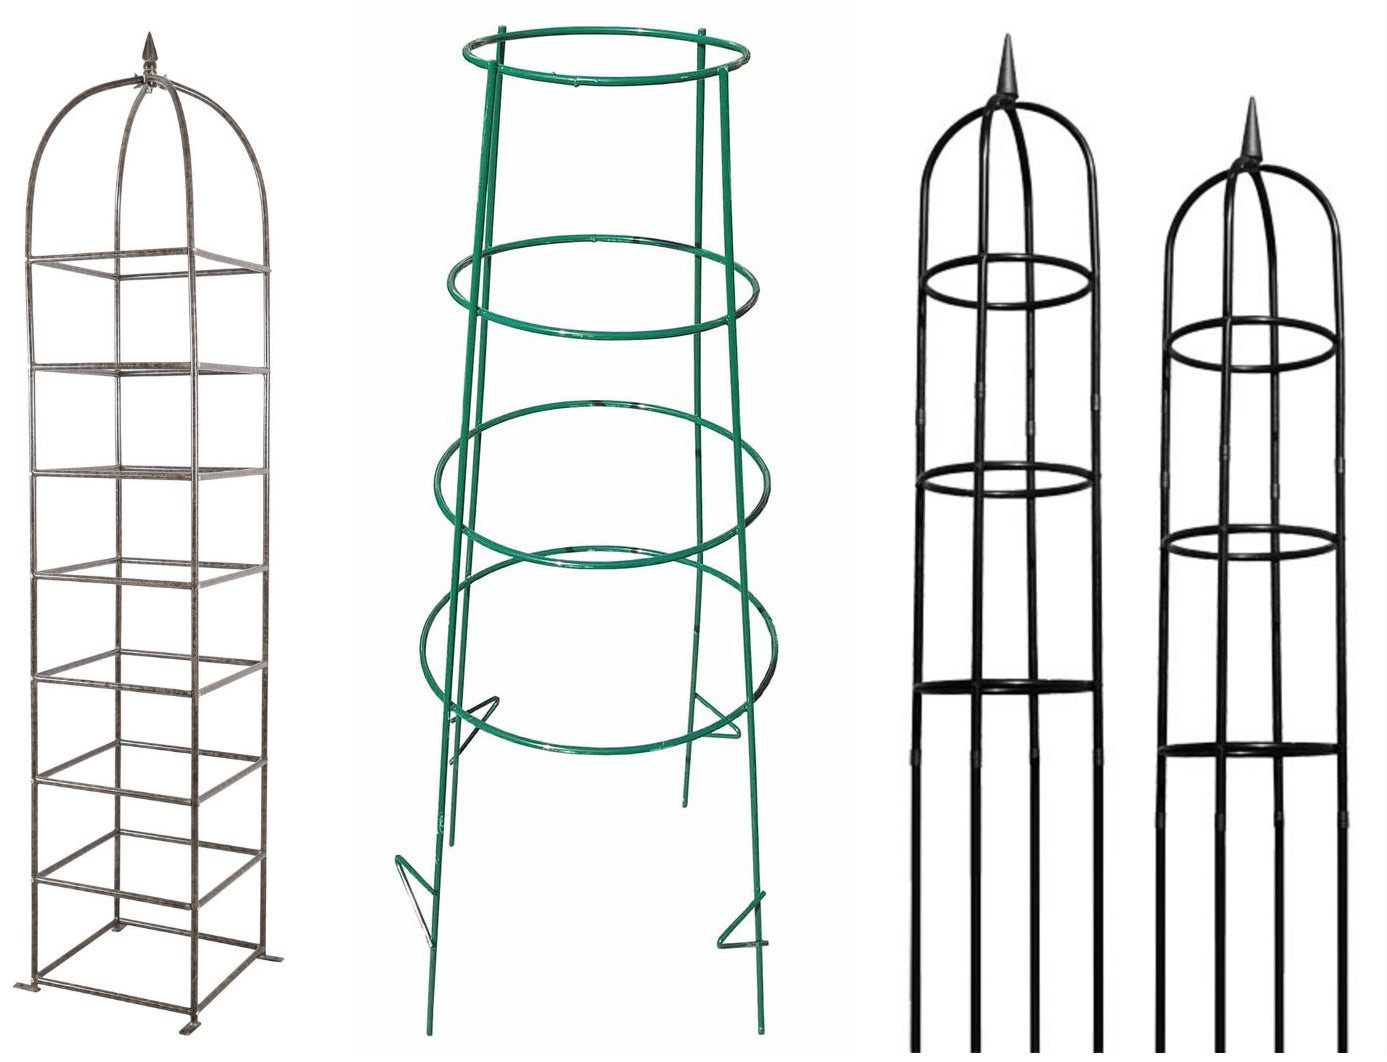 Best Presents for Gardeners - Tomato Cages such as Topiary Frames or Garden Obelisks